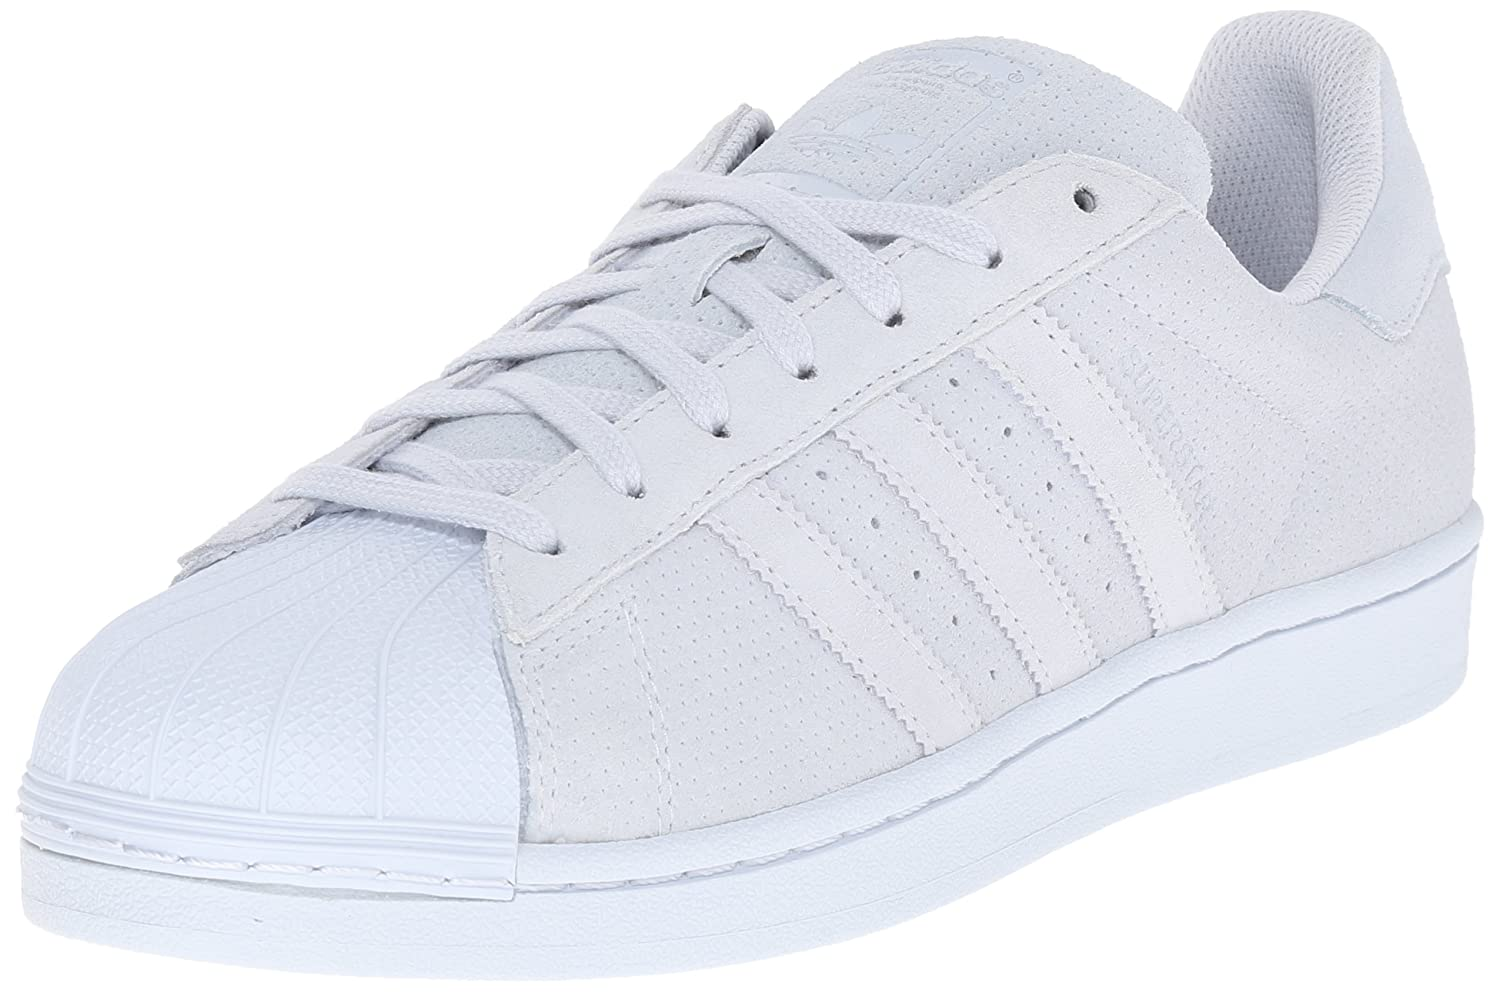 Cheap Adidas Superstar Vulc ADV: Shoes & Handbags B074F8P3K6